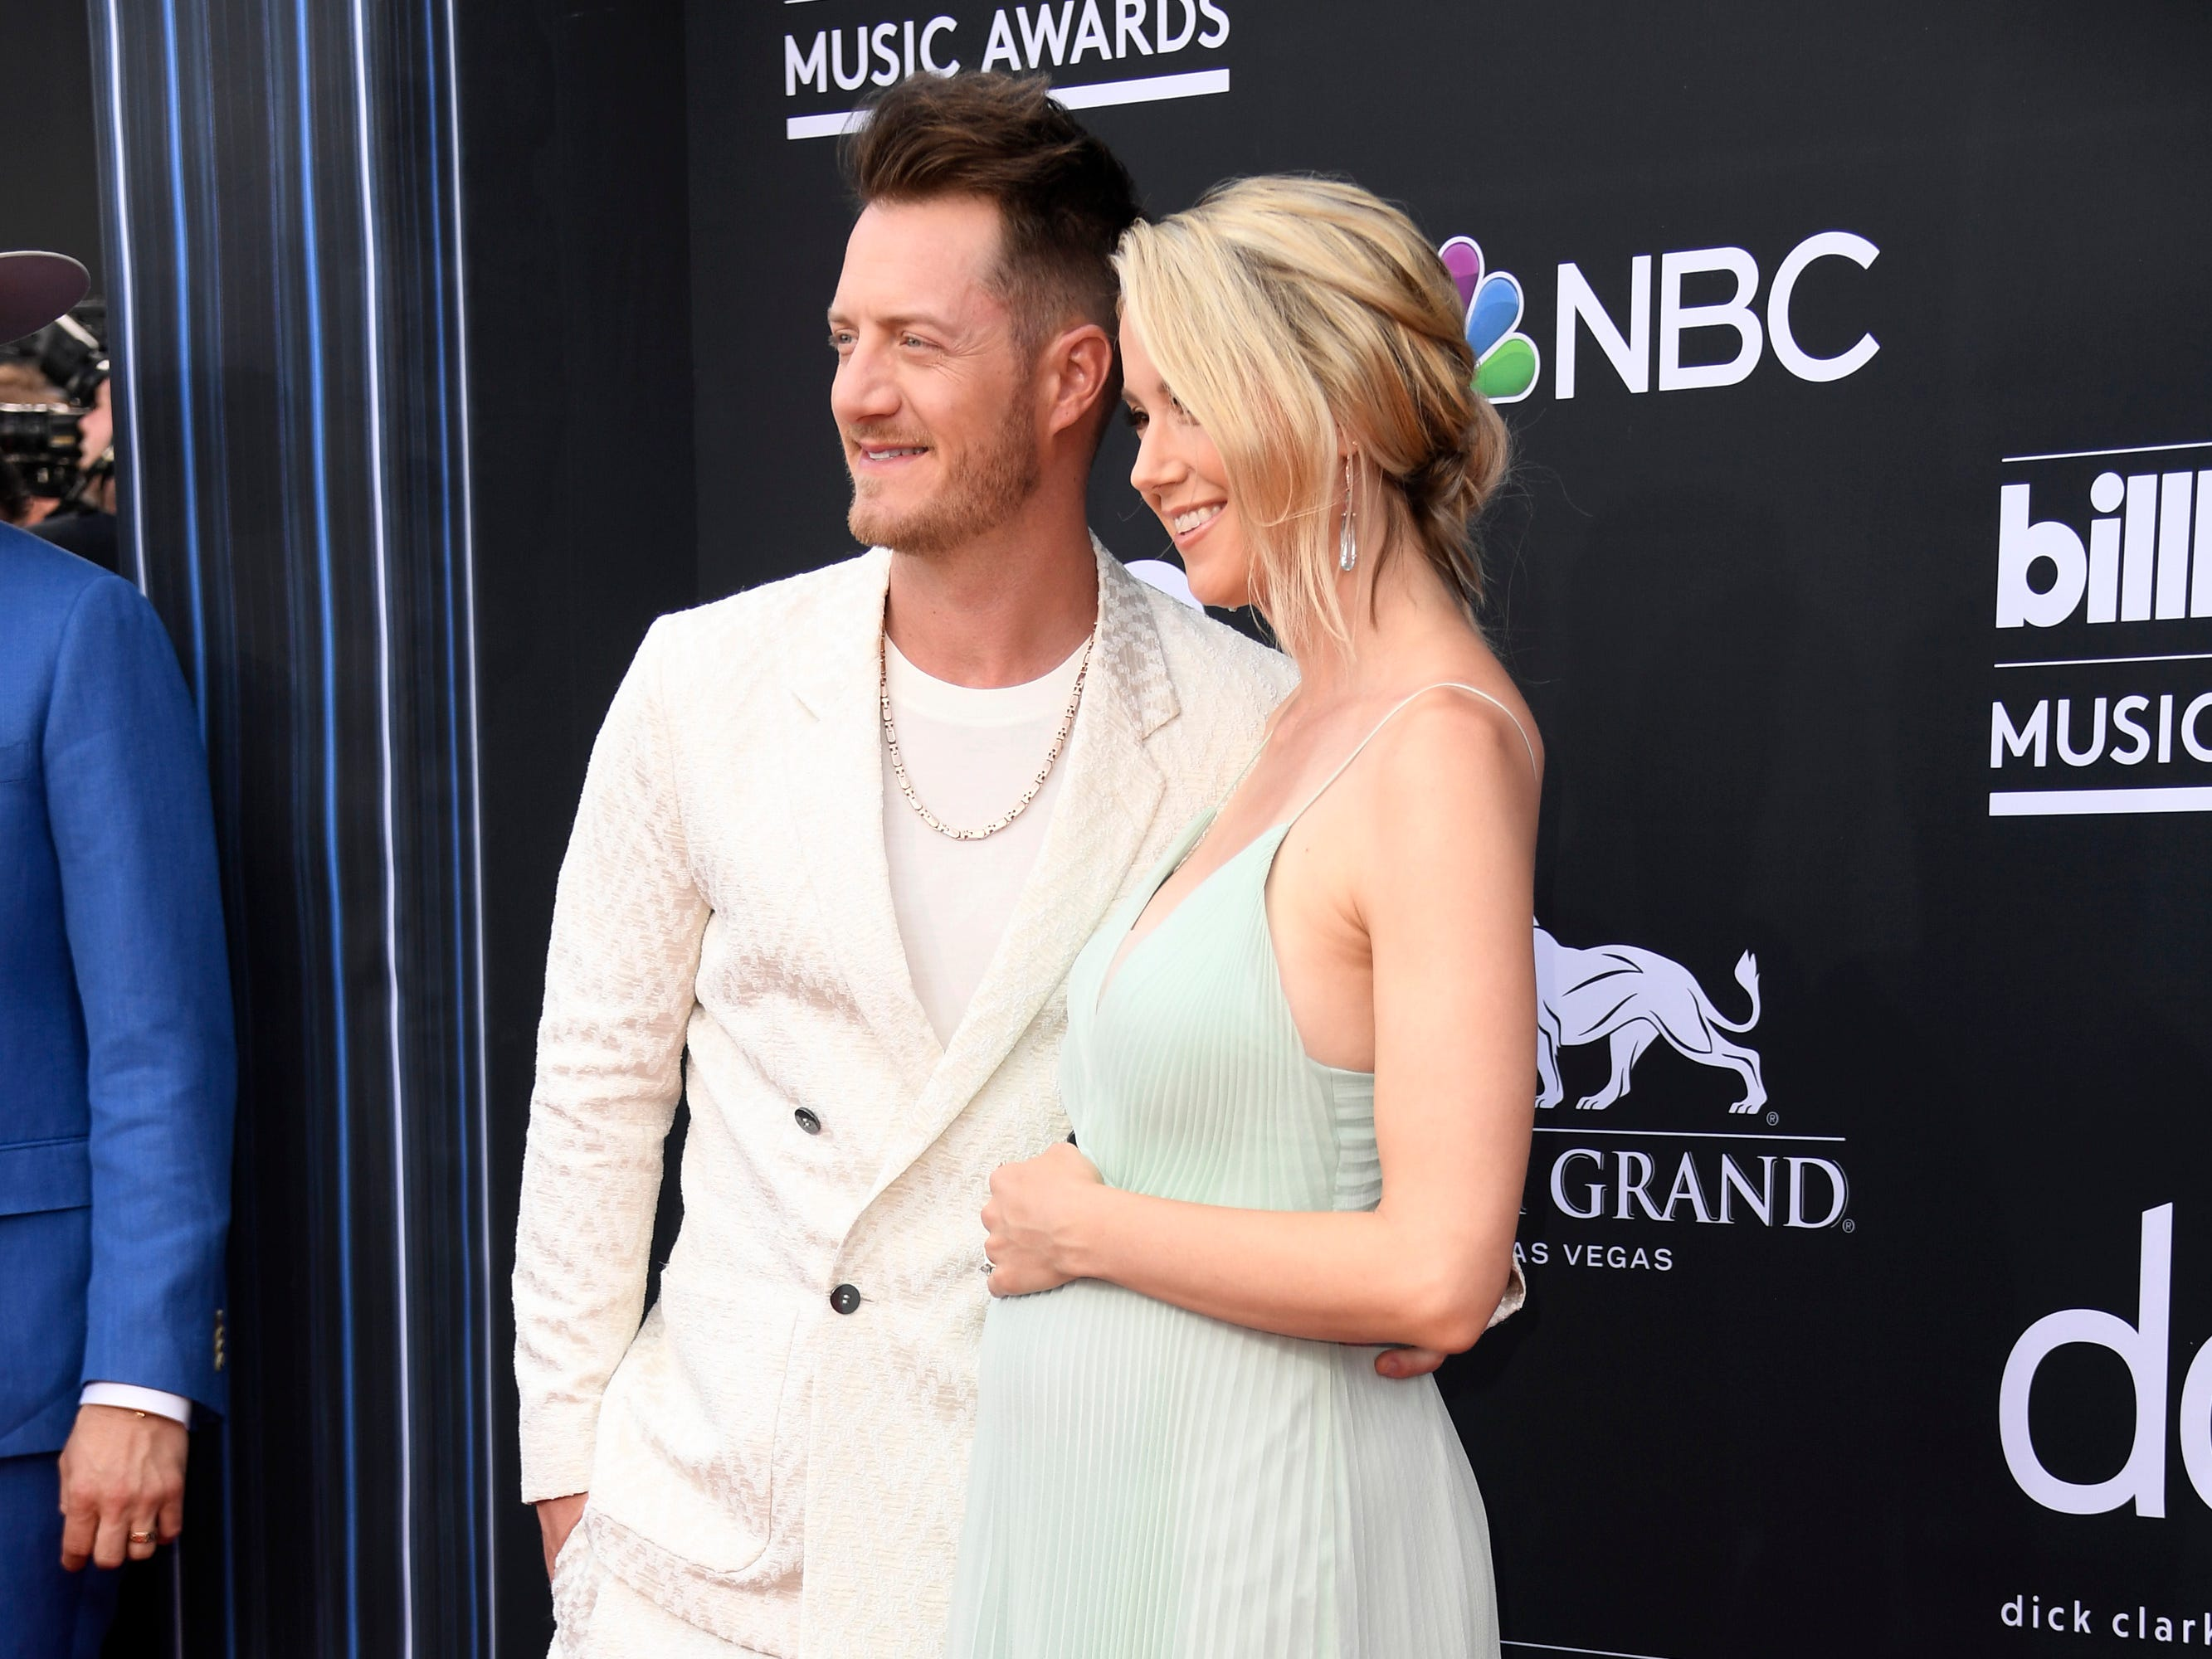 (L-R) Tyler Hubbard of Florida Georgia Line and Hayley Stommel Hubbard attend the 2019 Billboard Music Awards at MGM Grand Garden Arena on May 01, 2019 in Las Vegas, Nevada.